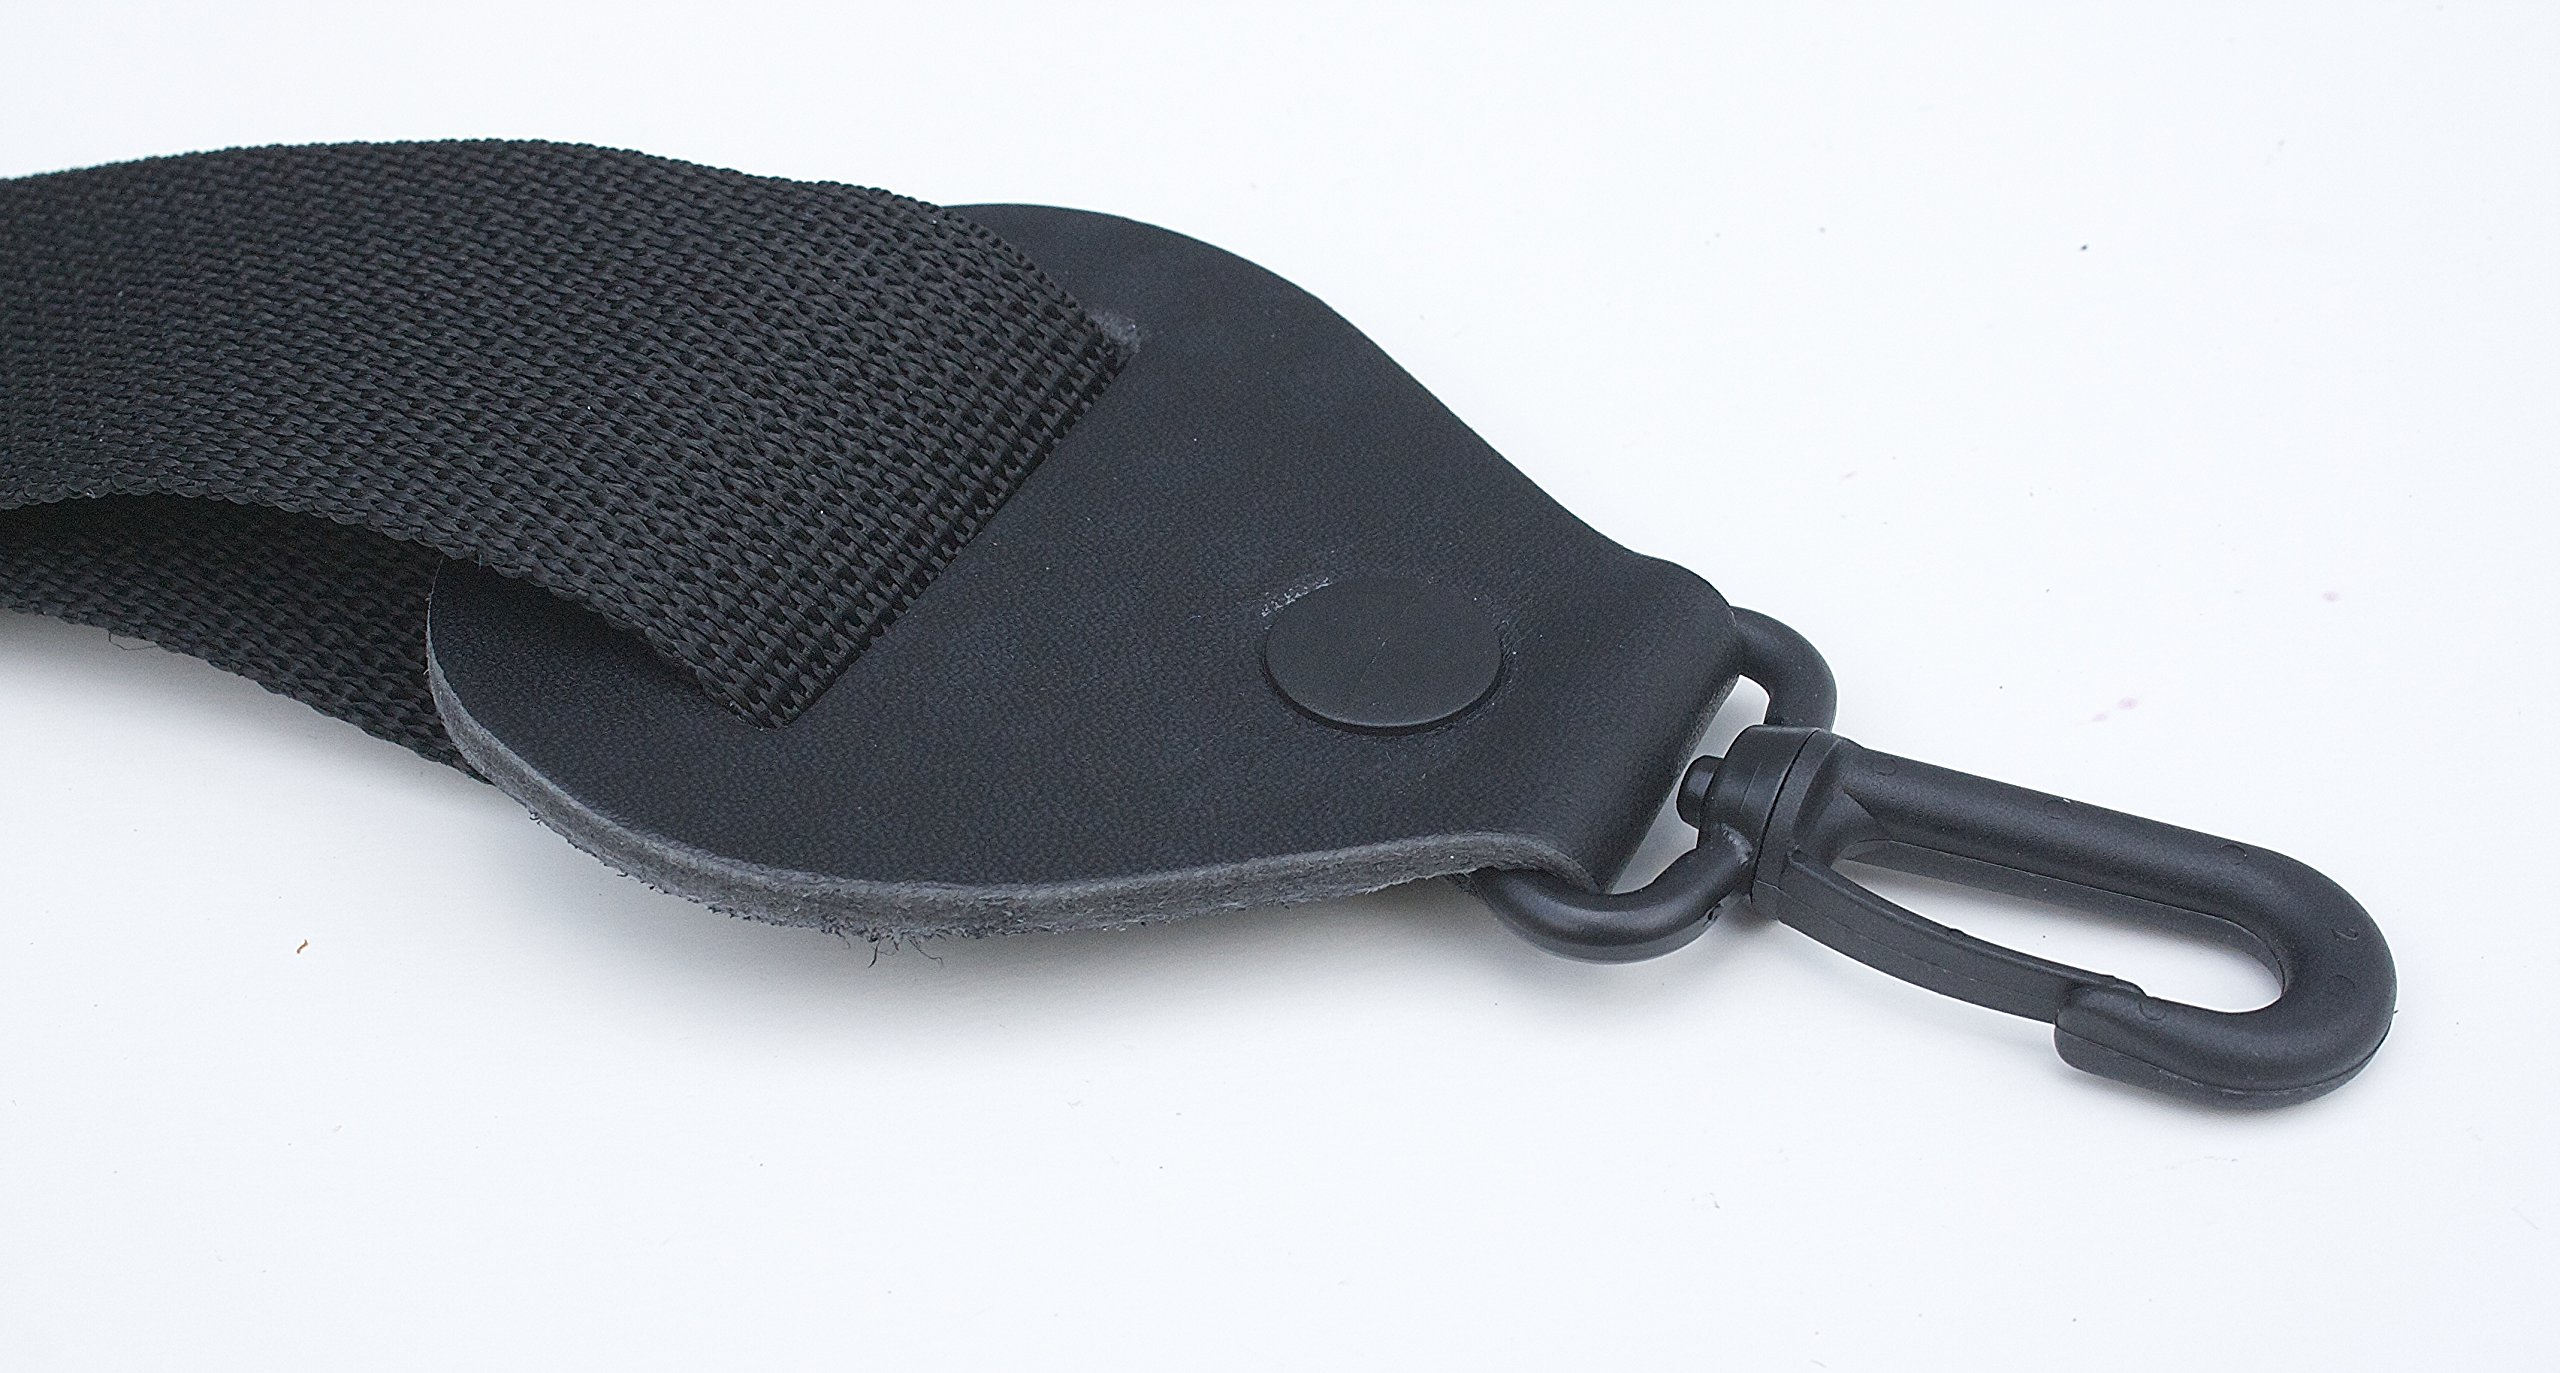 Banjo Strap BLACK Nylon Solid Leather Ends Quick & Easy Clips Quality Made In U.S.A. Since 1978